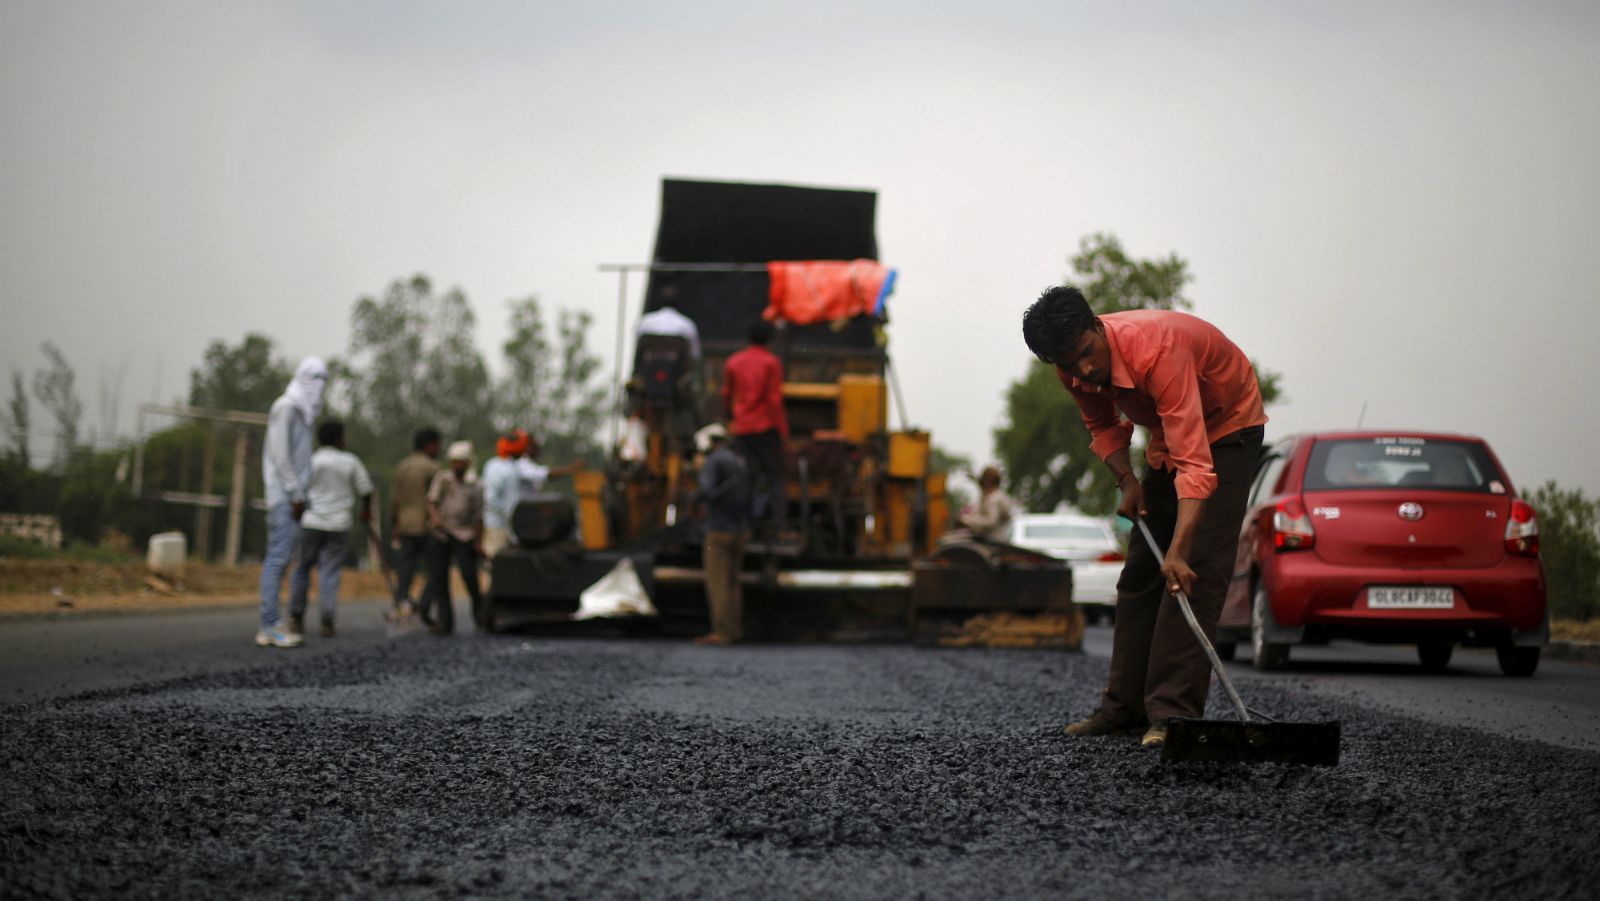 A labourer works at the construction site of the Delhi-Jaipur national highway in Manesar in the northern state of Haryana, India, July 9, 2015.